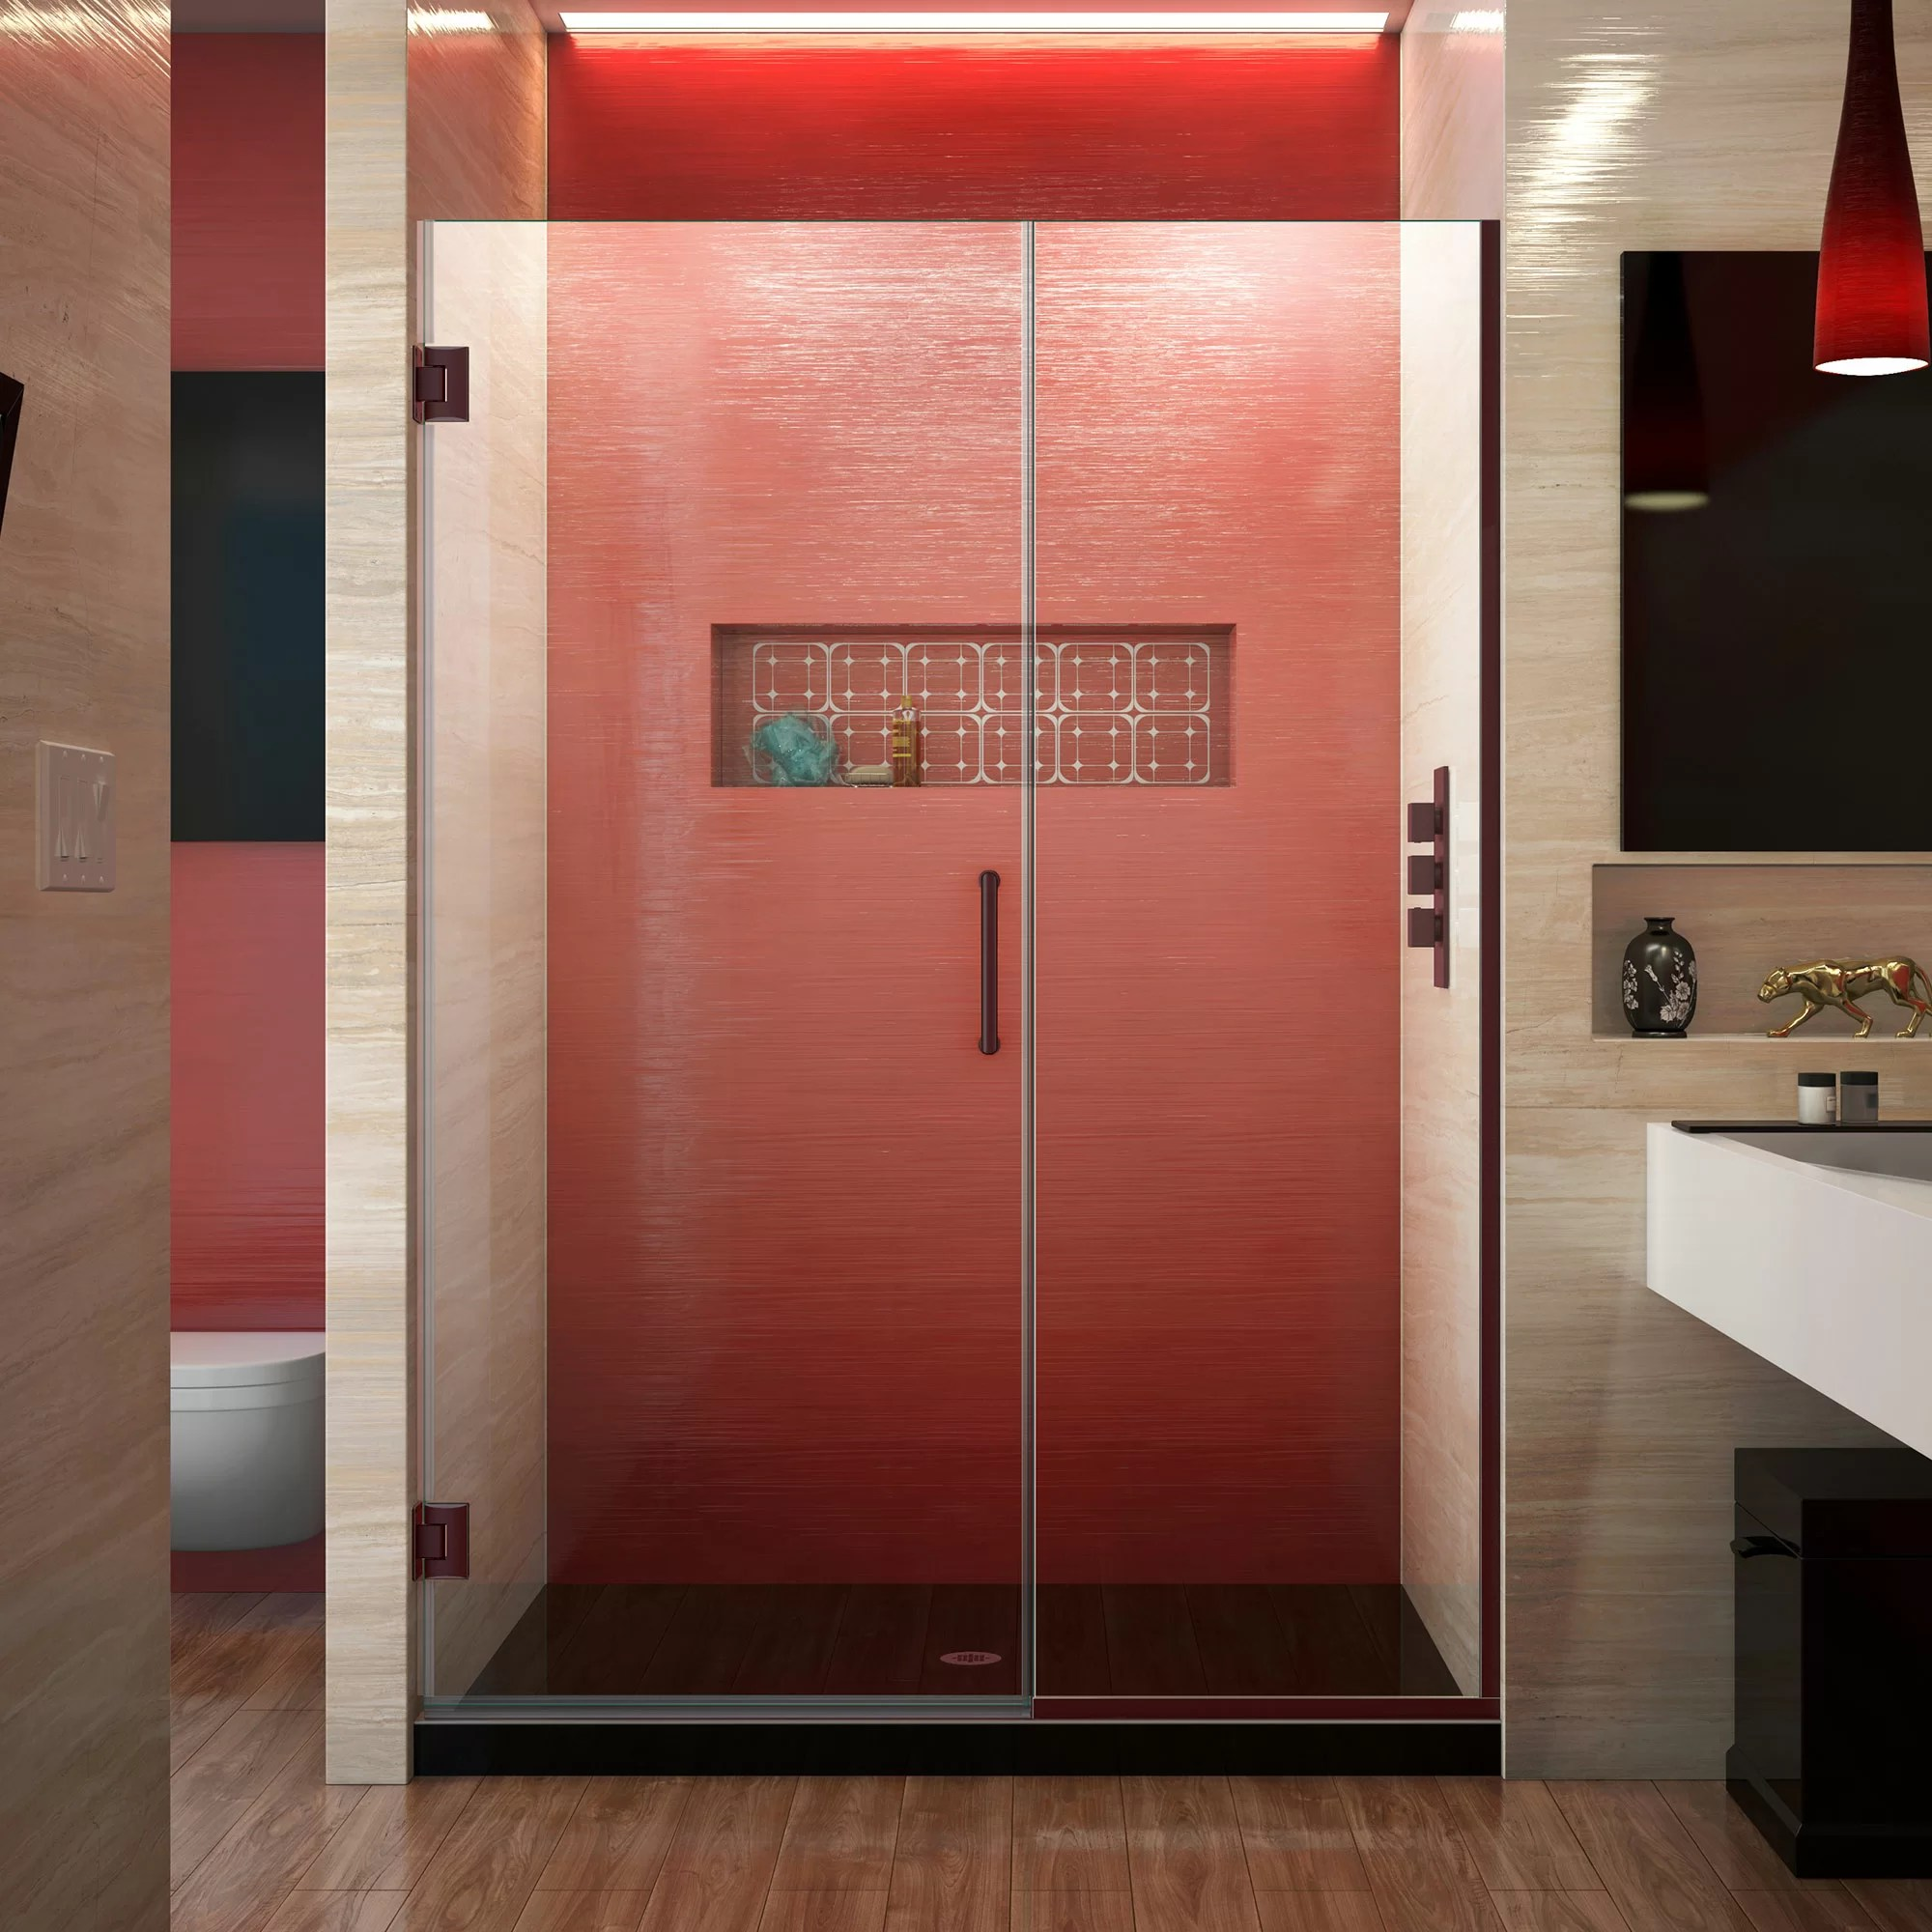 Unidoor Plus 45 5 X 72 Hinged Frameless Shower Door With Clearmax Technology